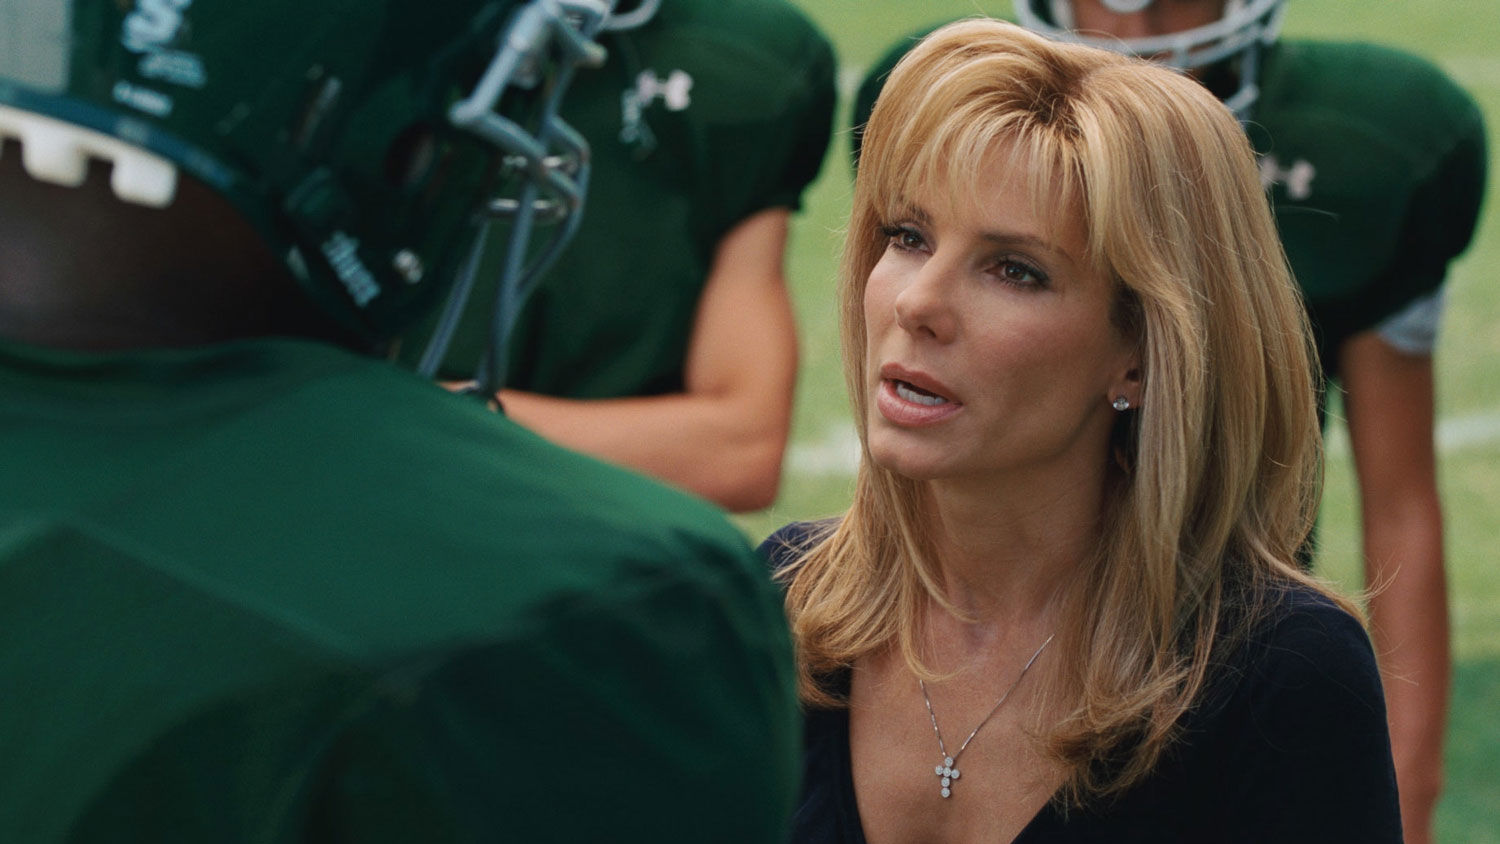 THE-BLIND-SIDE-AMERICAN-FOOTBALL-MOVIES